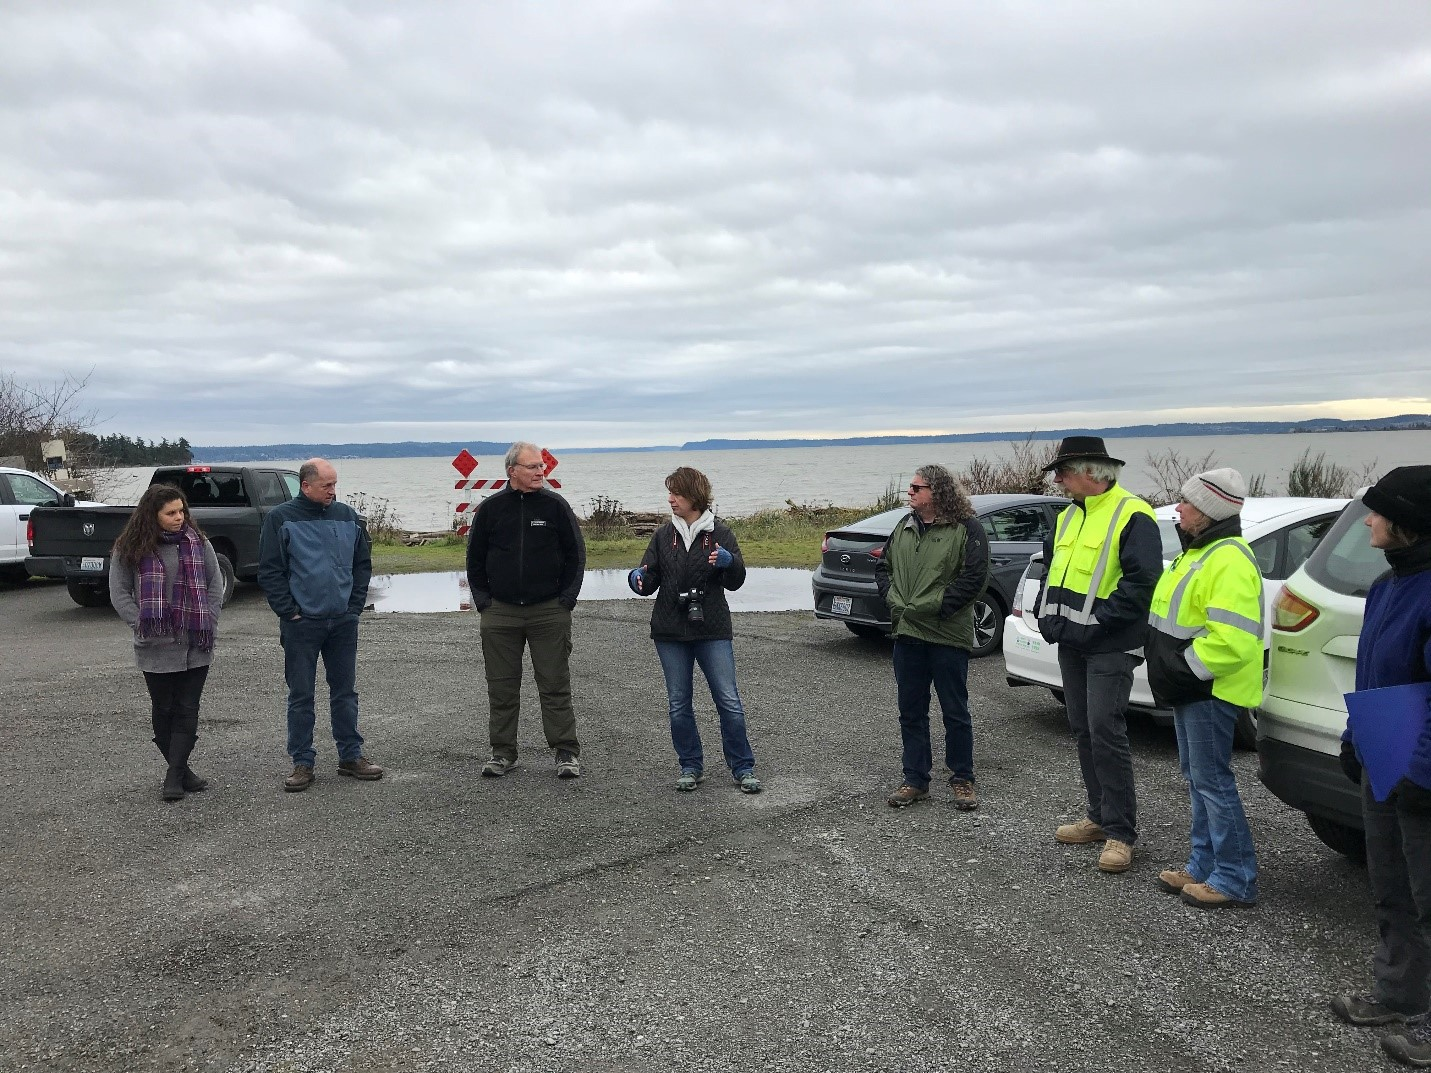 Photo of stakeholders discussing a possible project at Livingston Bay. Photo credit: Laura Ferguson.